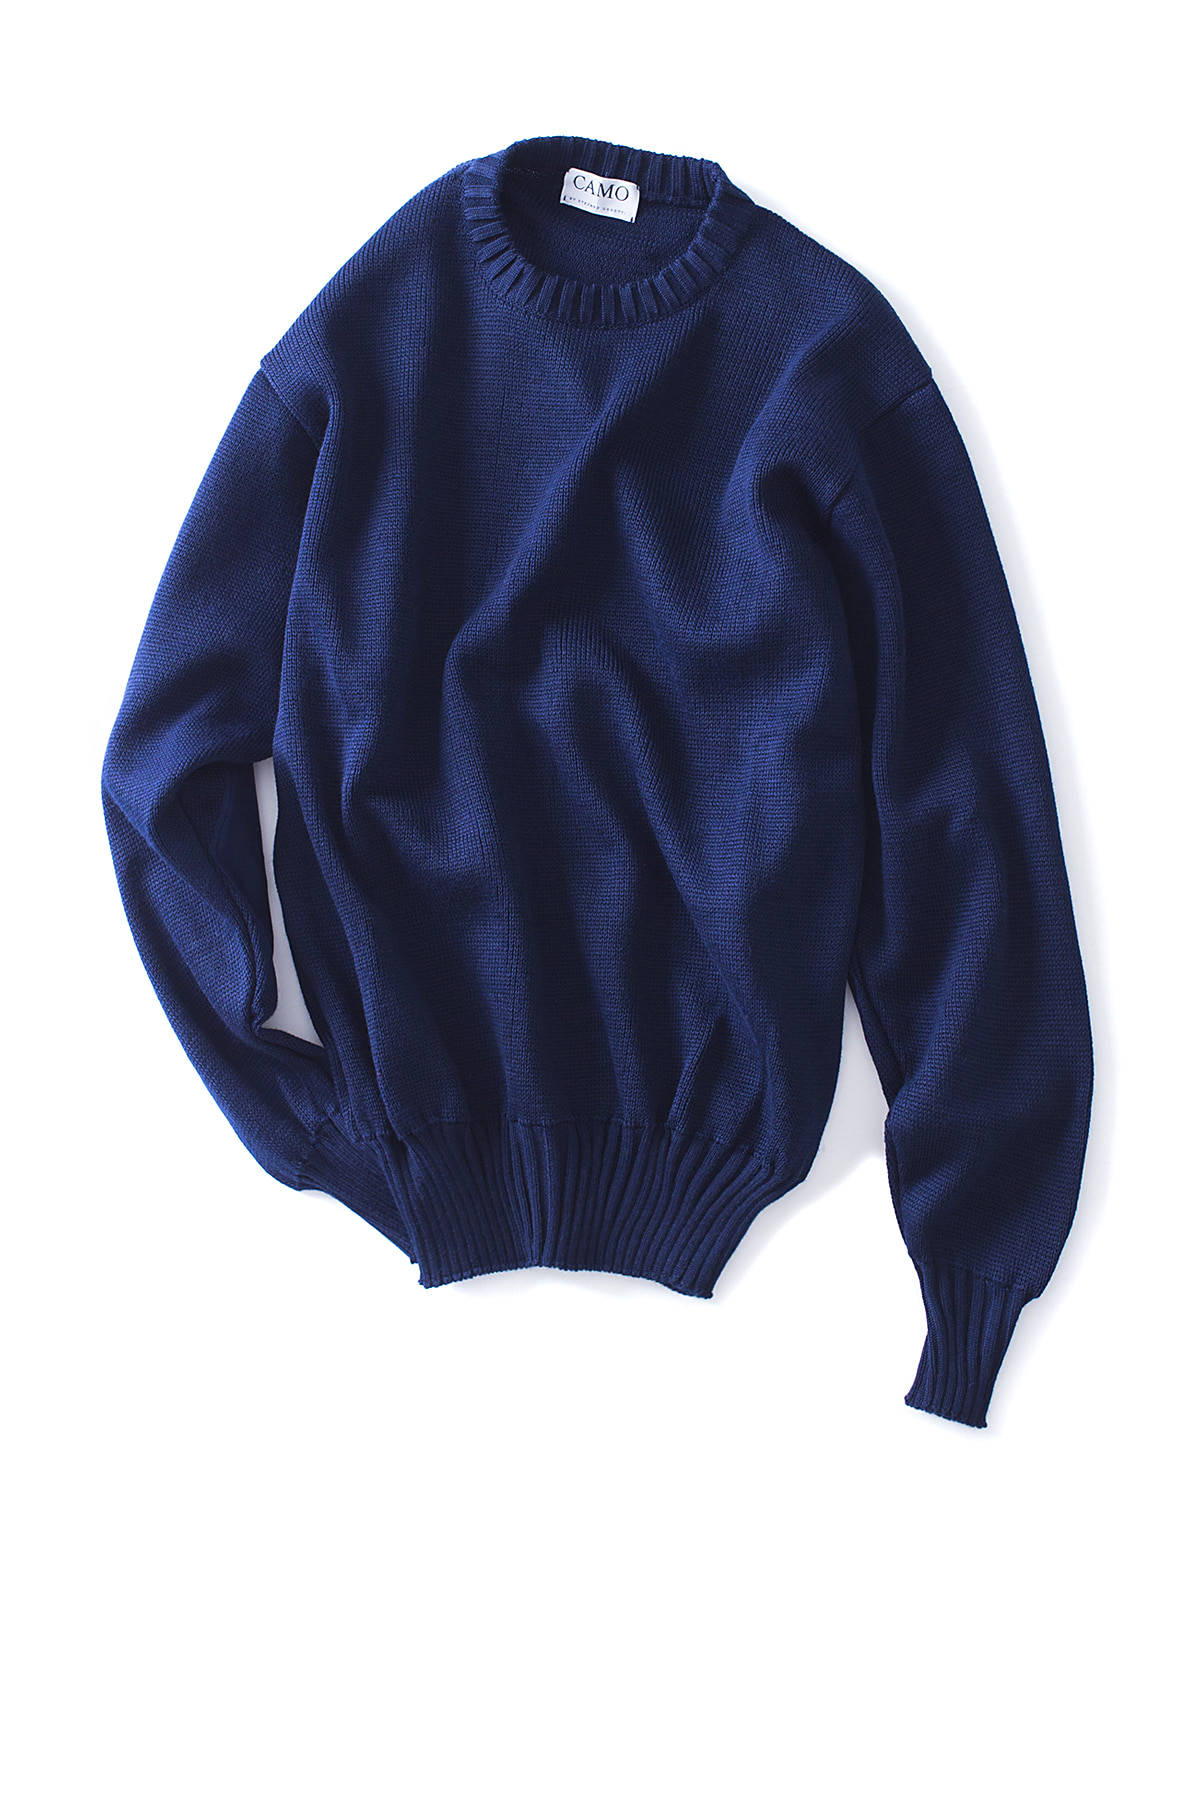 CAMO : Patch Pullover Boy Scout (Navy)